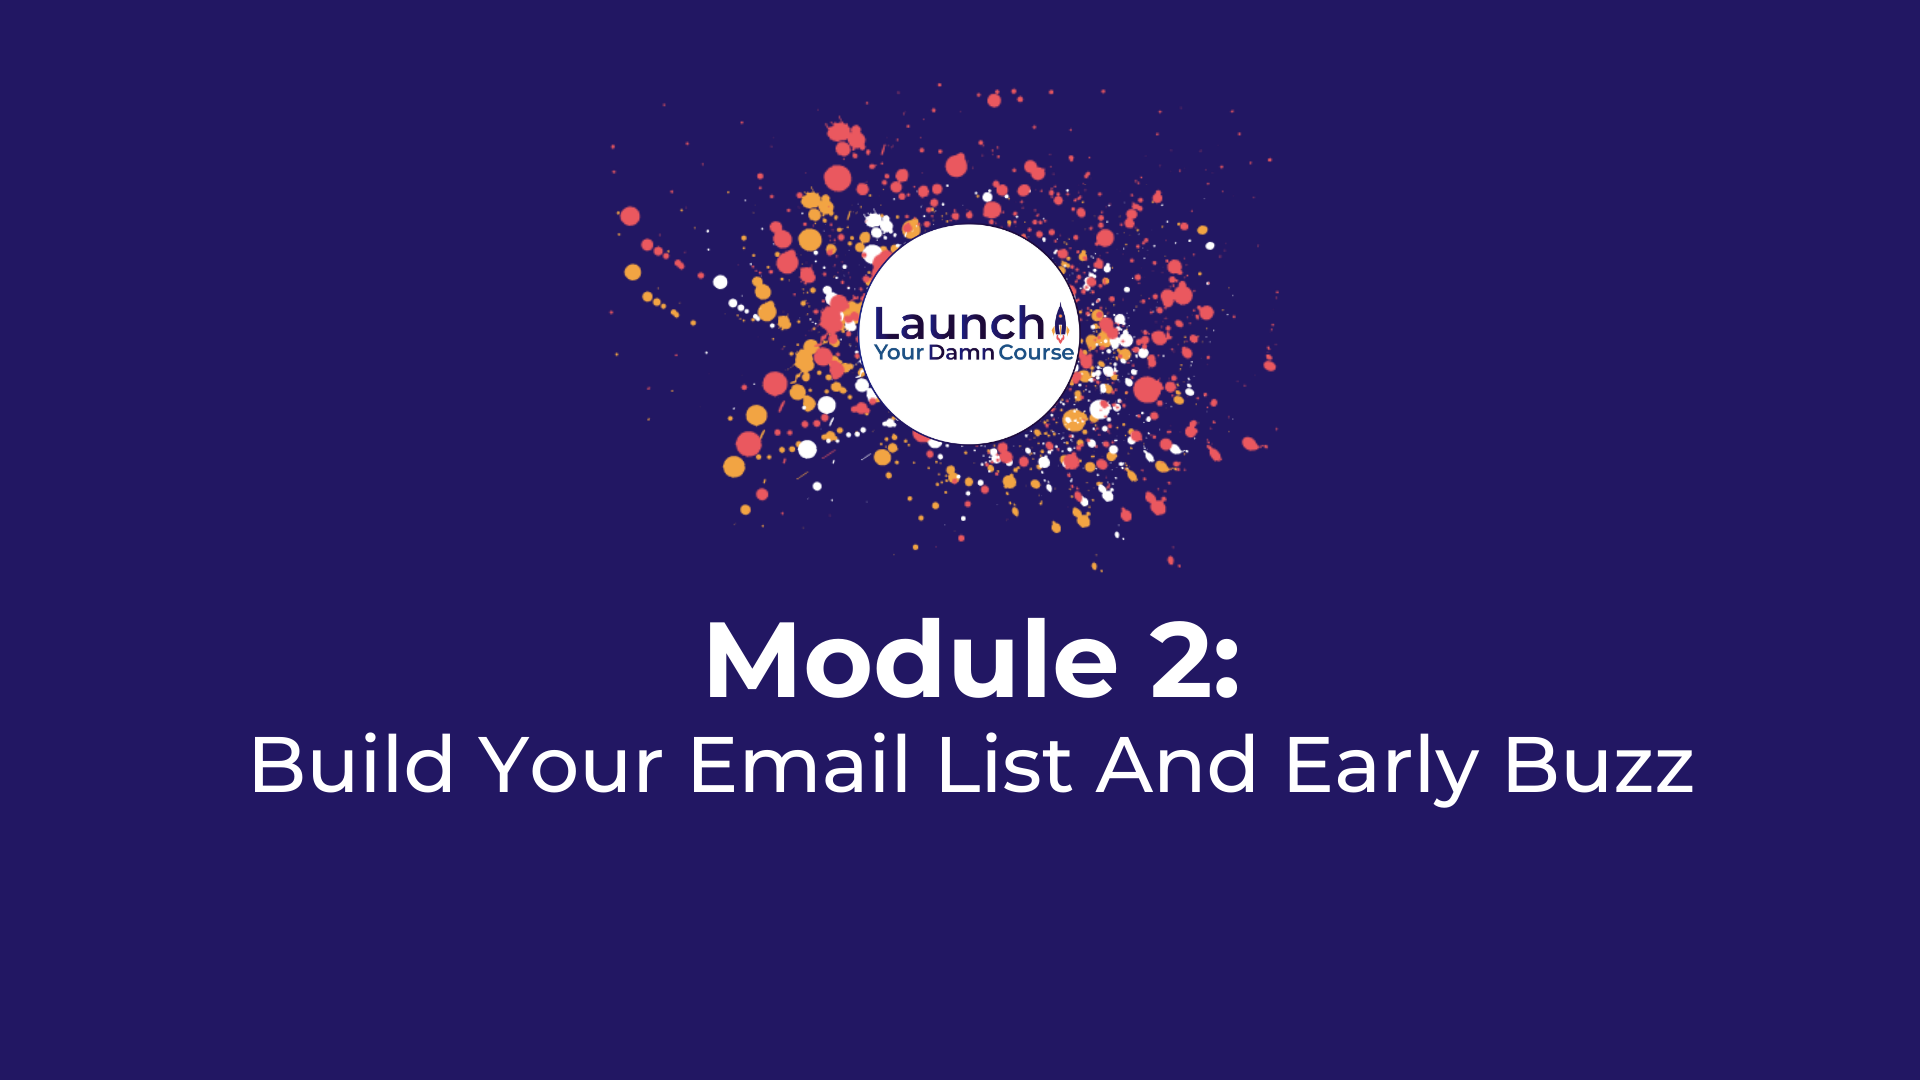 Module 2 - Build Your Email List And Early Buzz